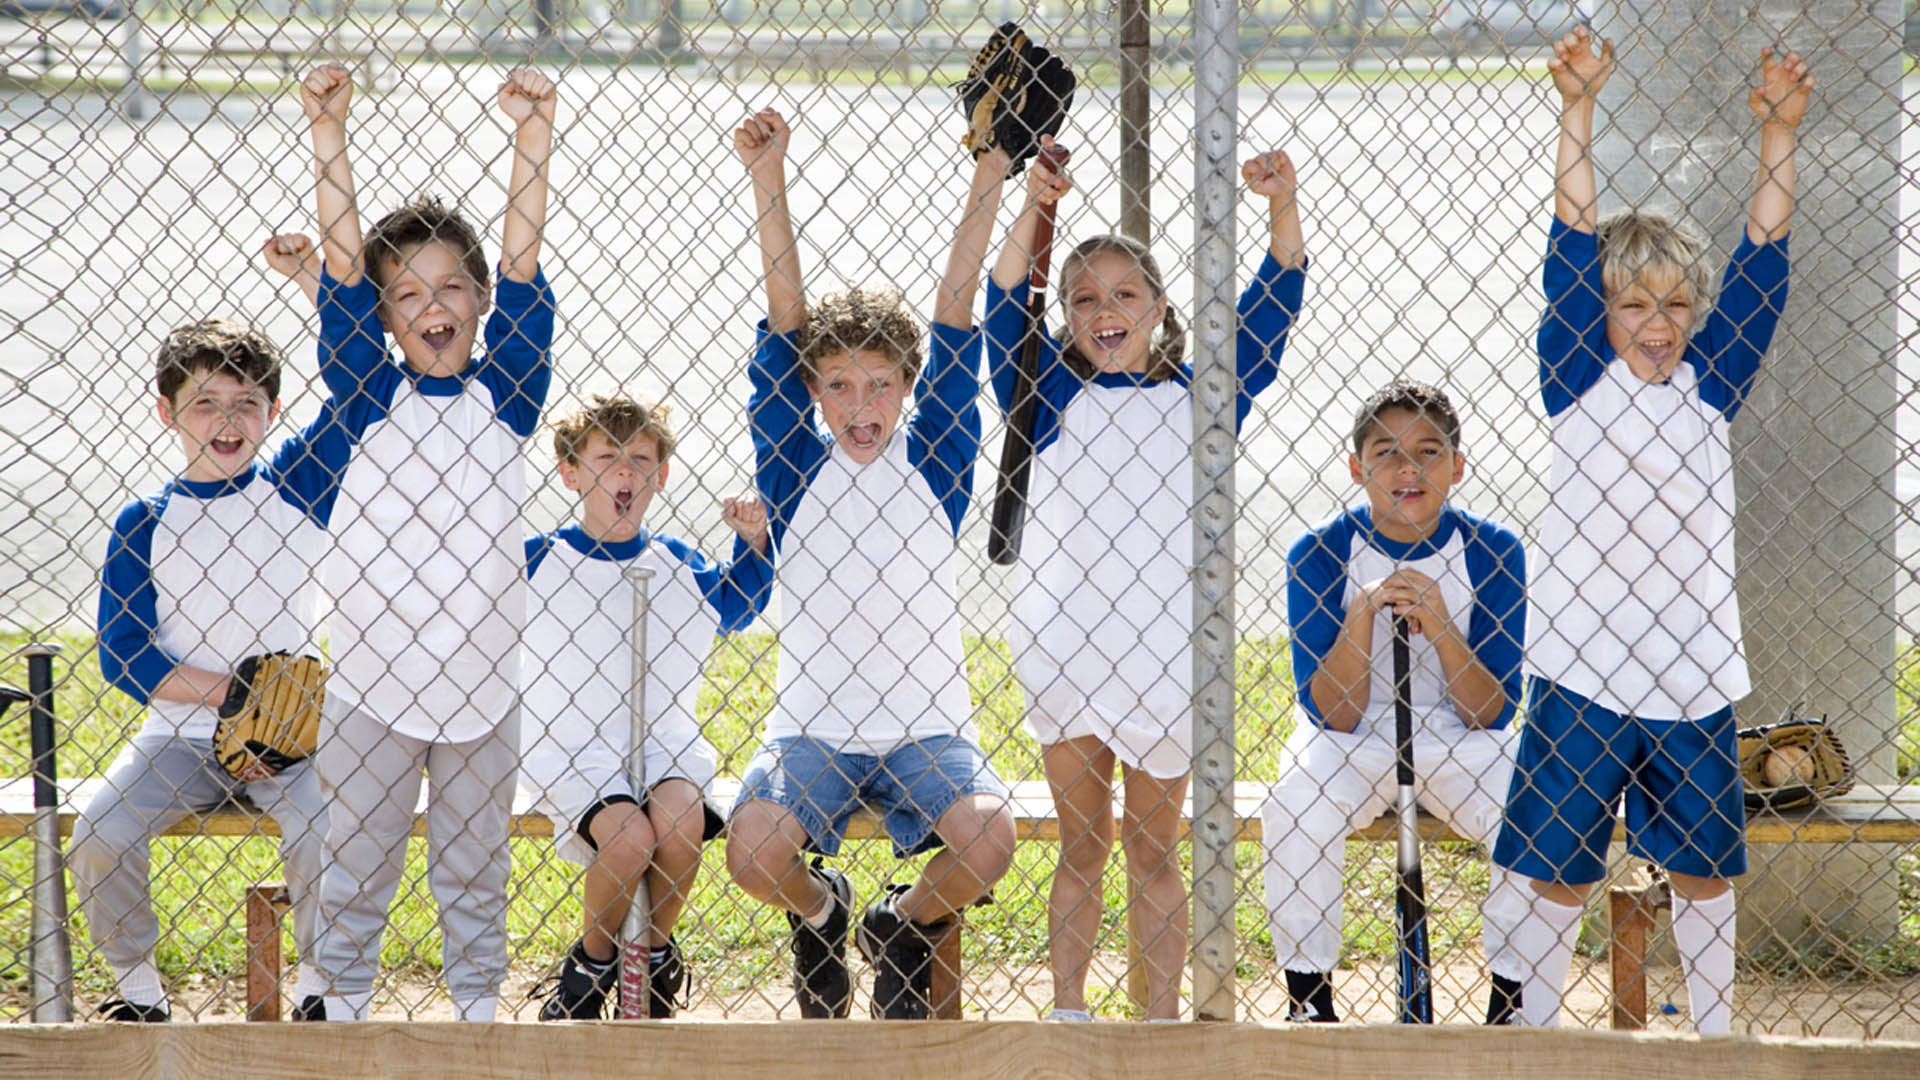 Baseball Kids Hero Image